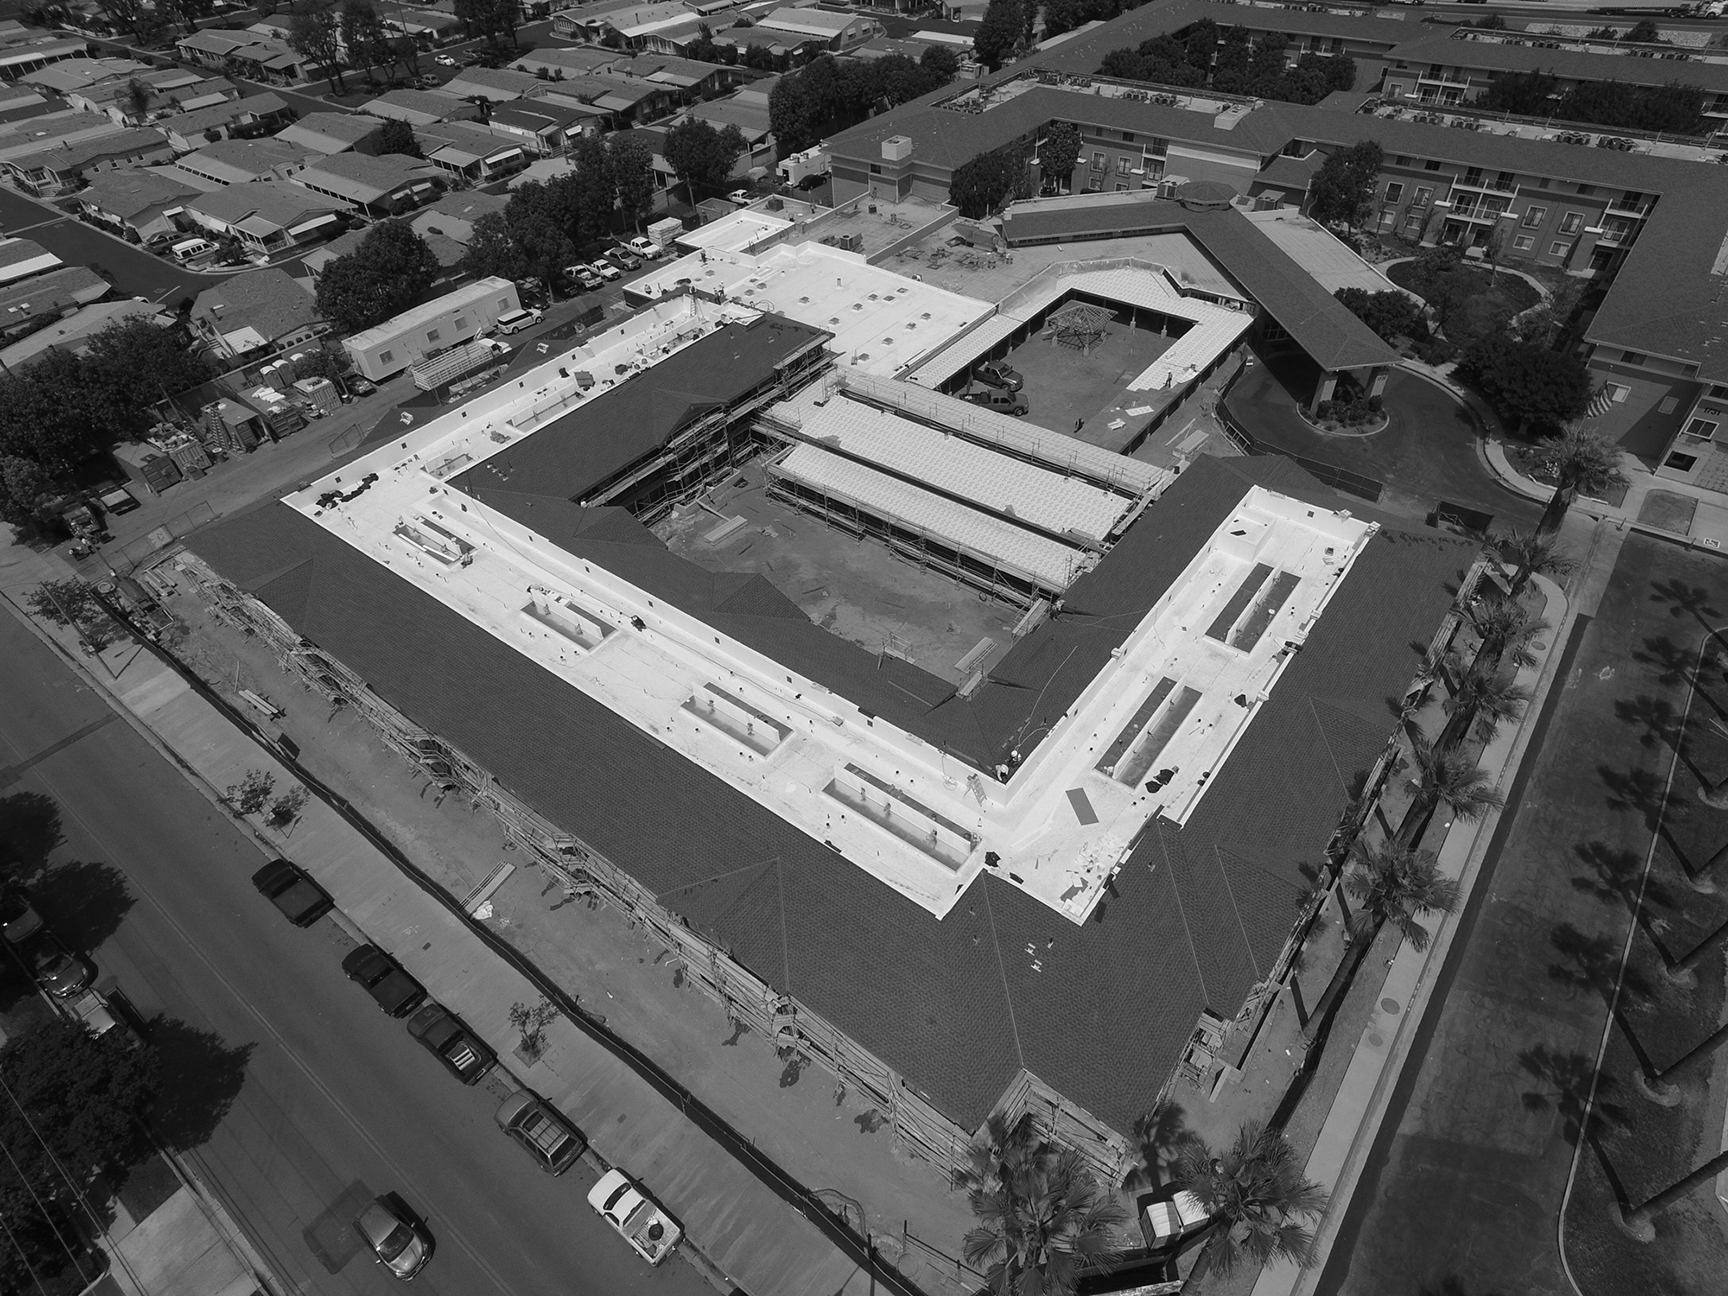 - Birdseye view of construction in progress. The senior living facility expansion project takes shape